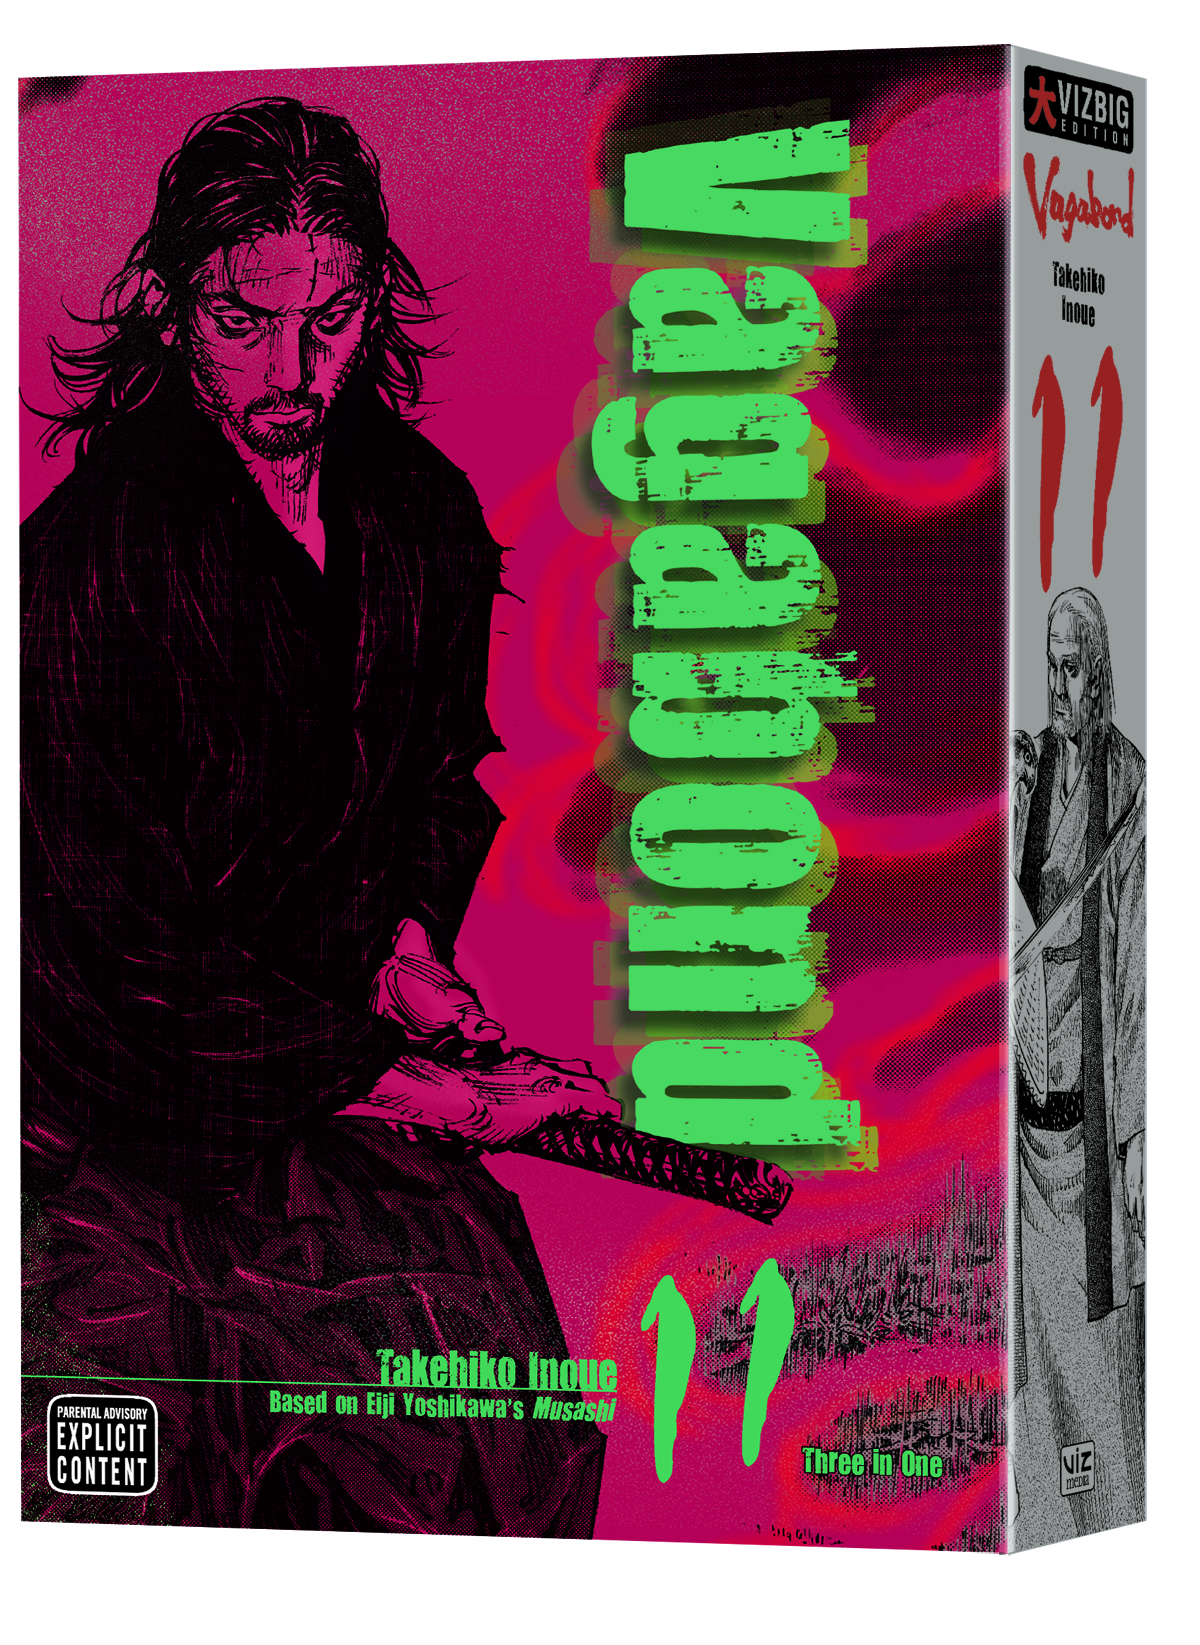 VAGABOND VIZBIG ED TP VOL 11 (MR)